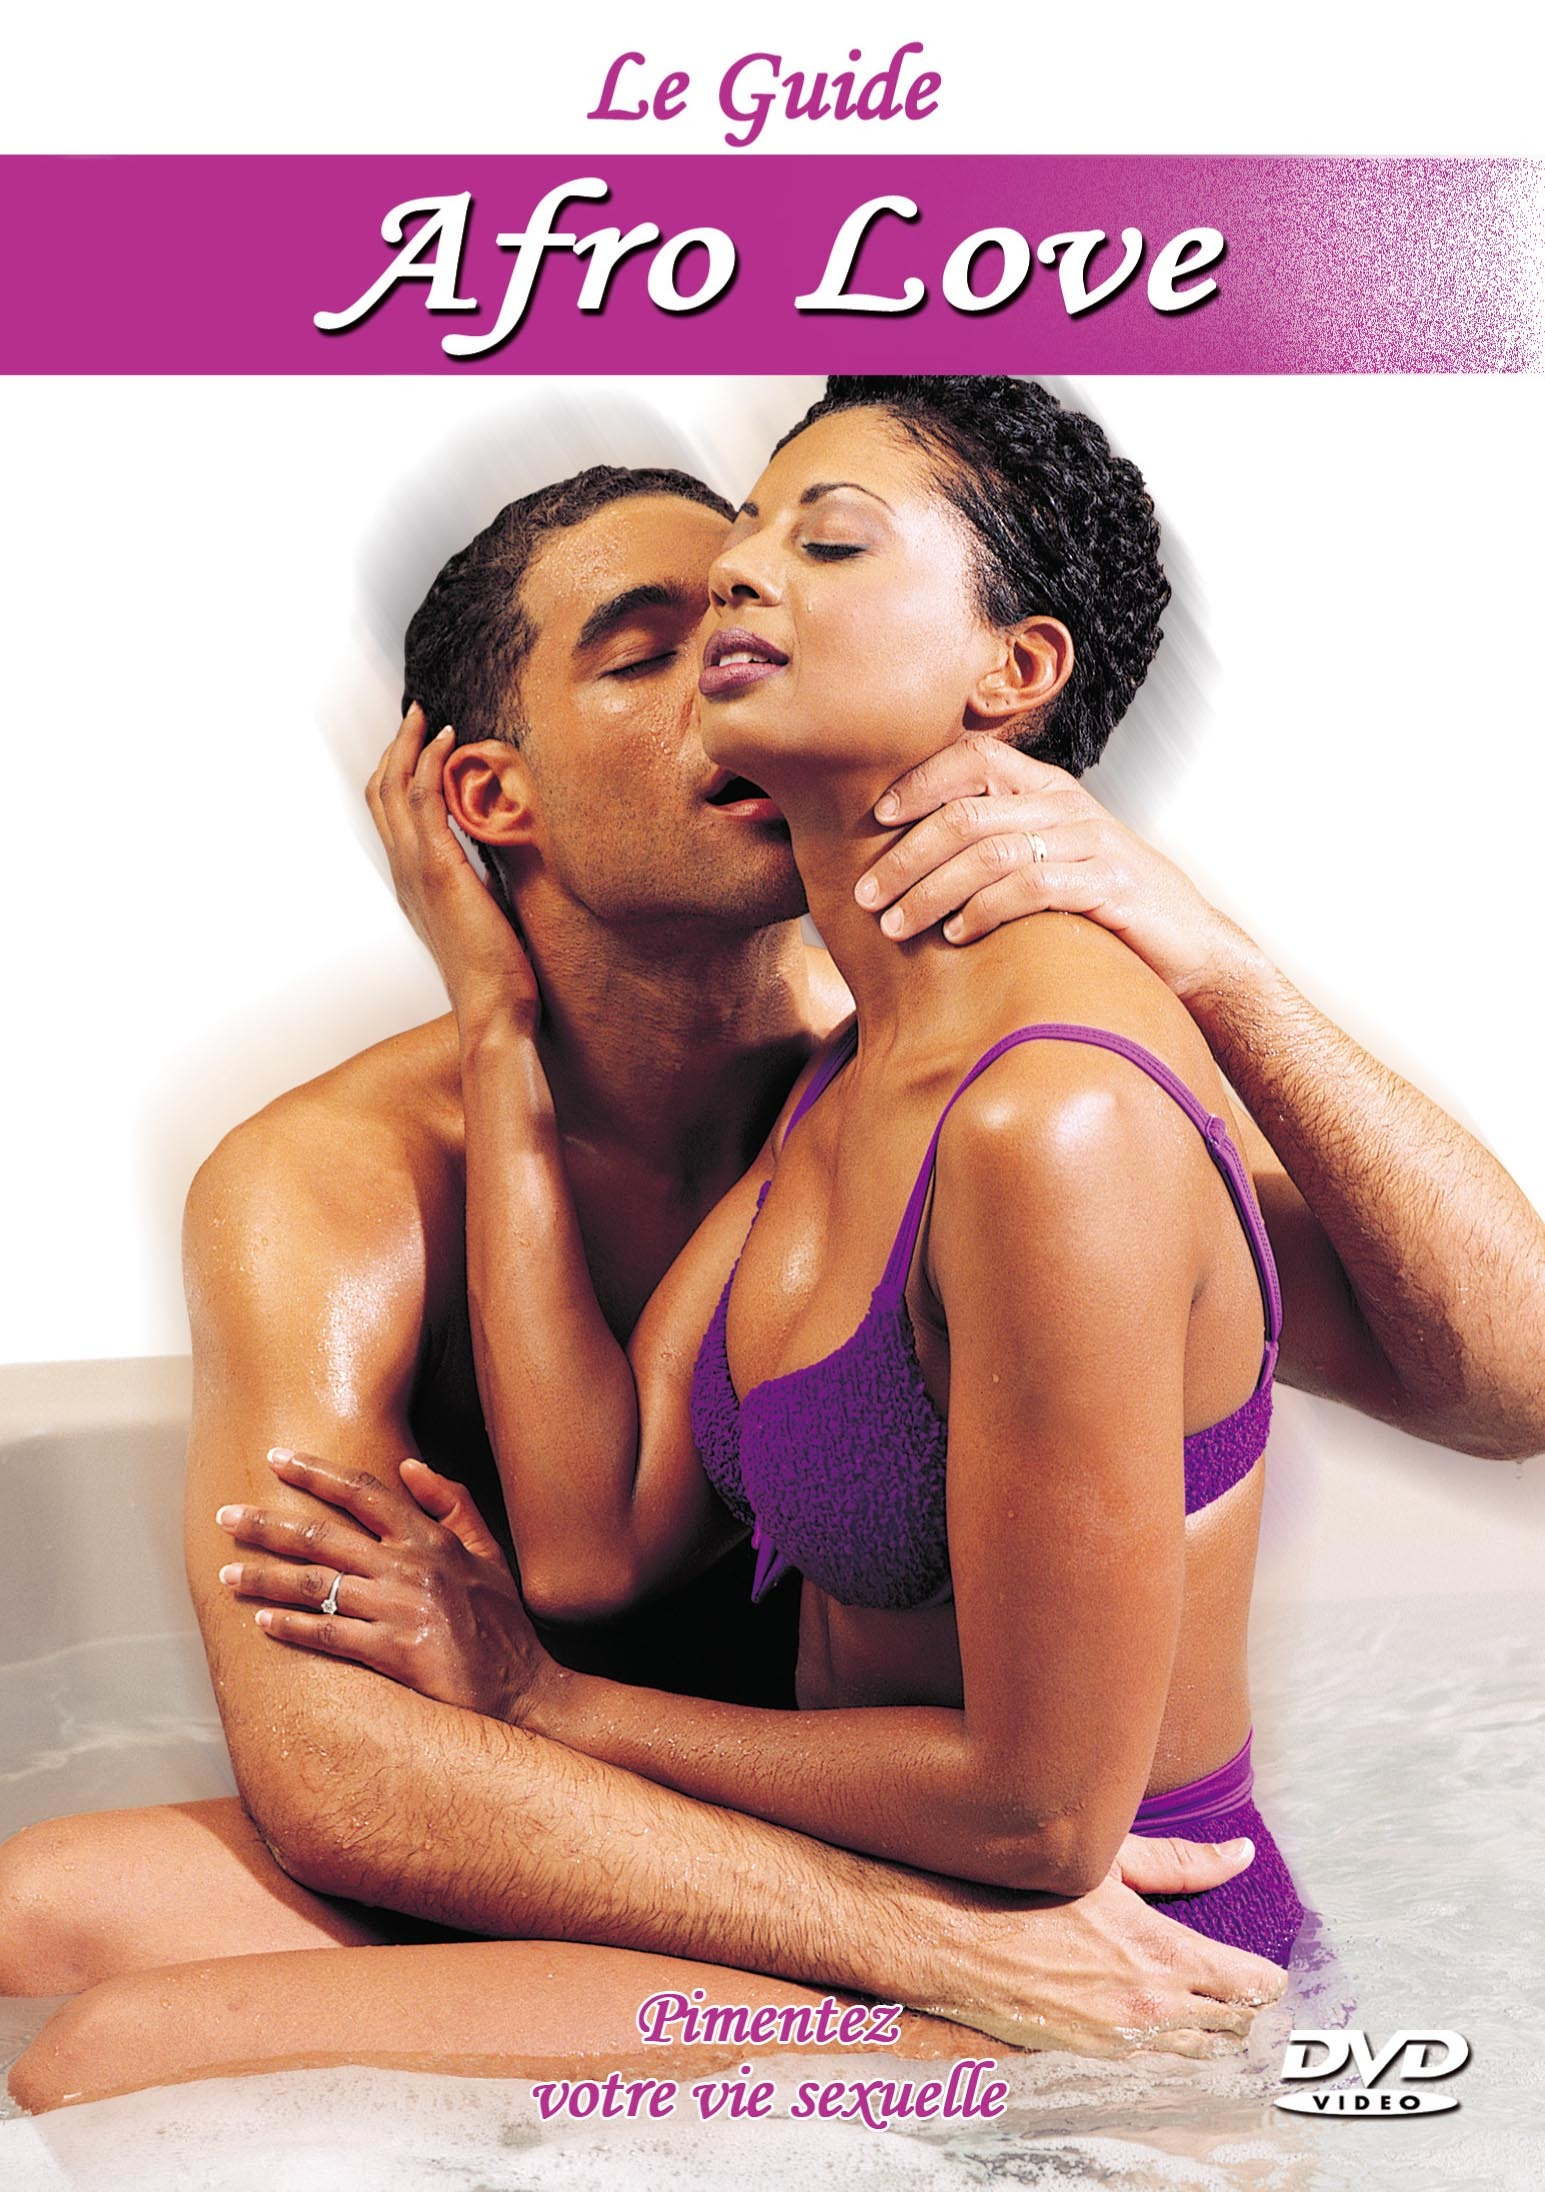 GUIDE AFRO LOVE - DVD